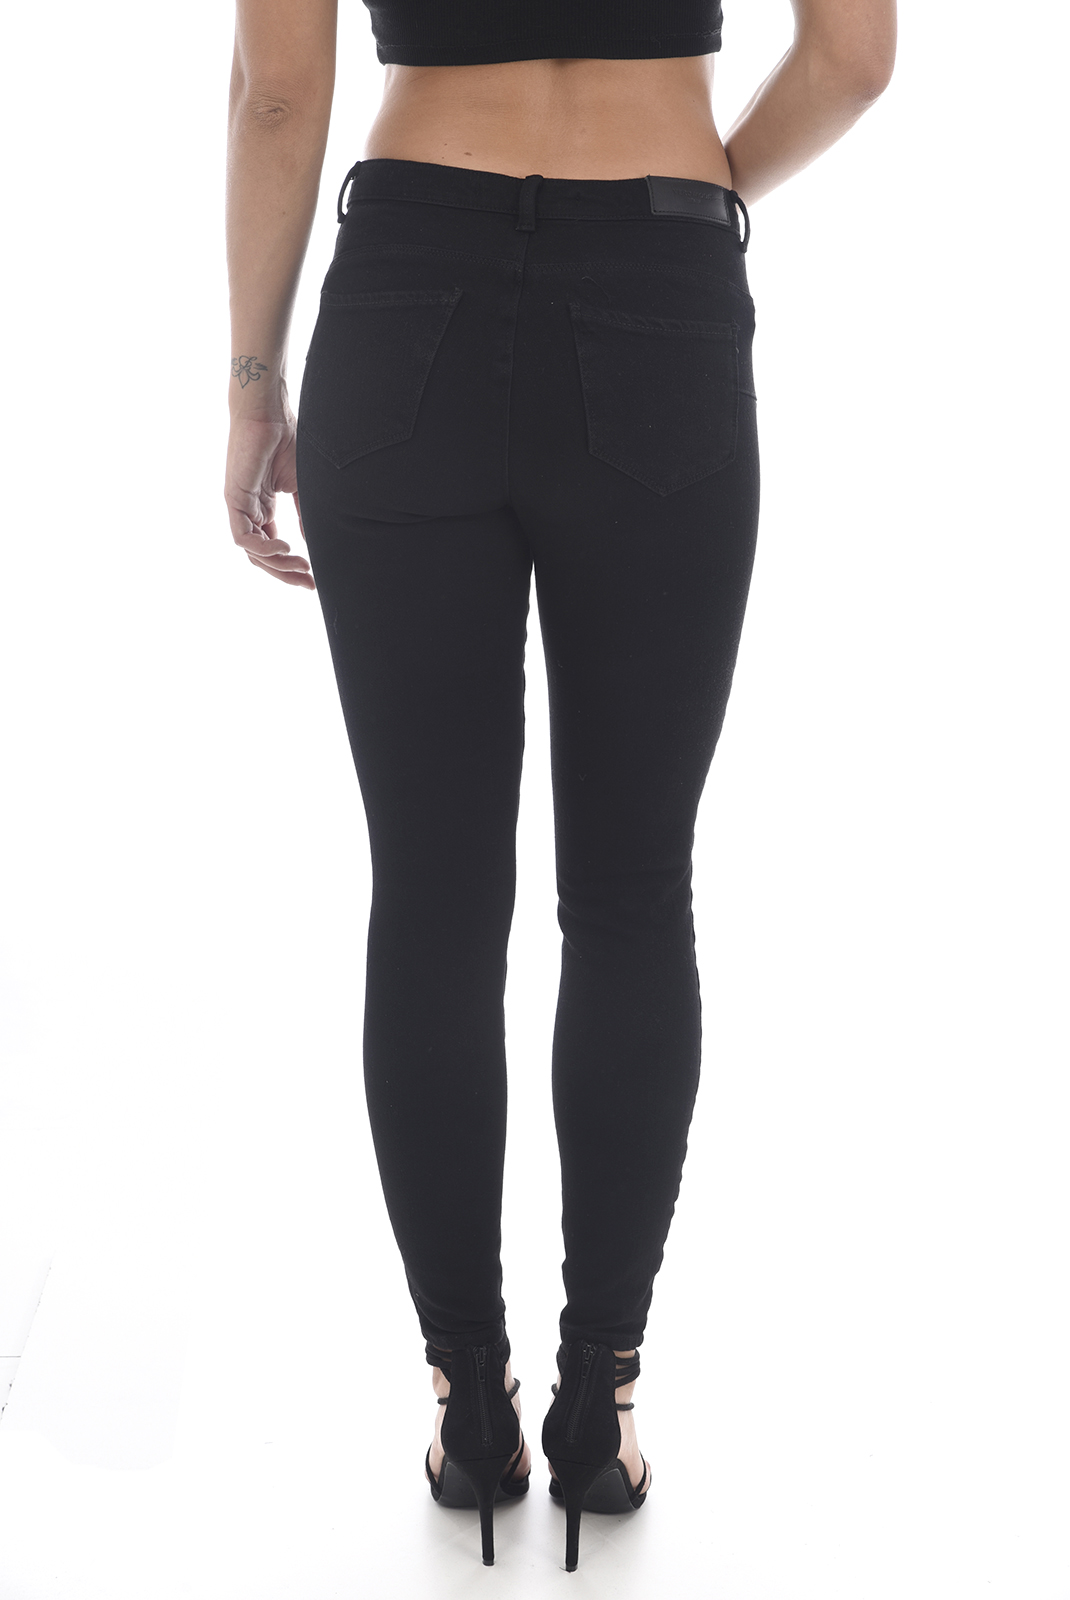 Vero Moda Icon Nw Push Up Jeans Women